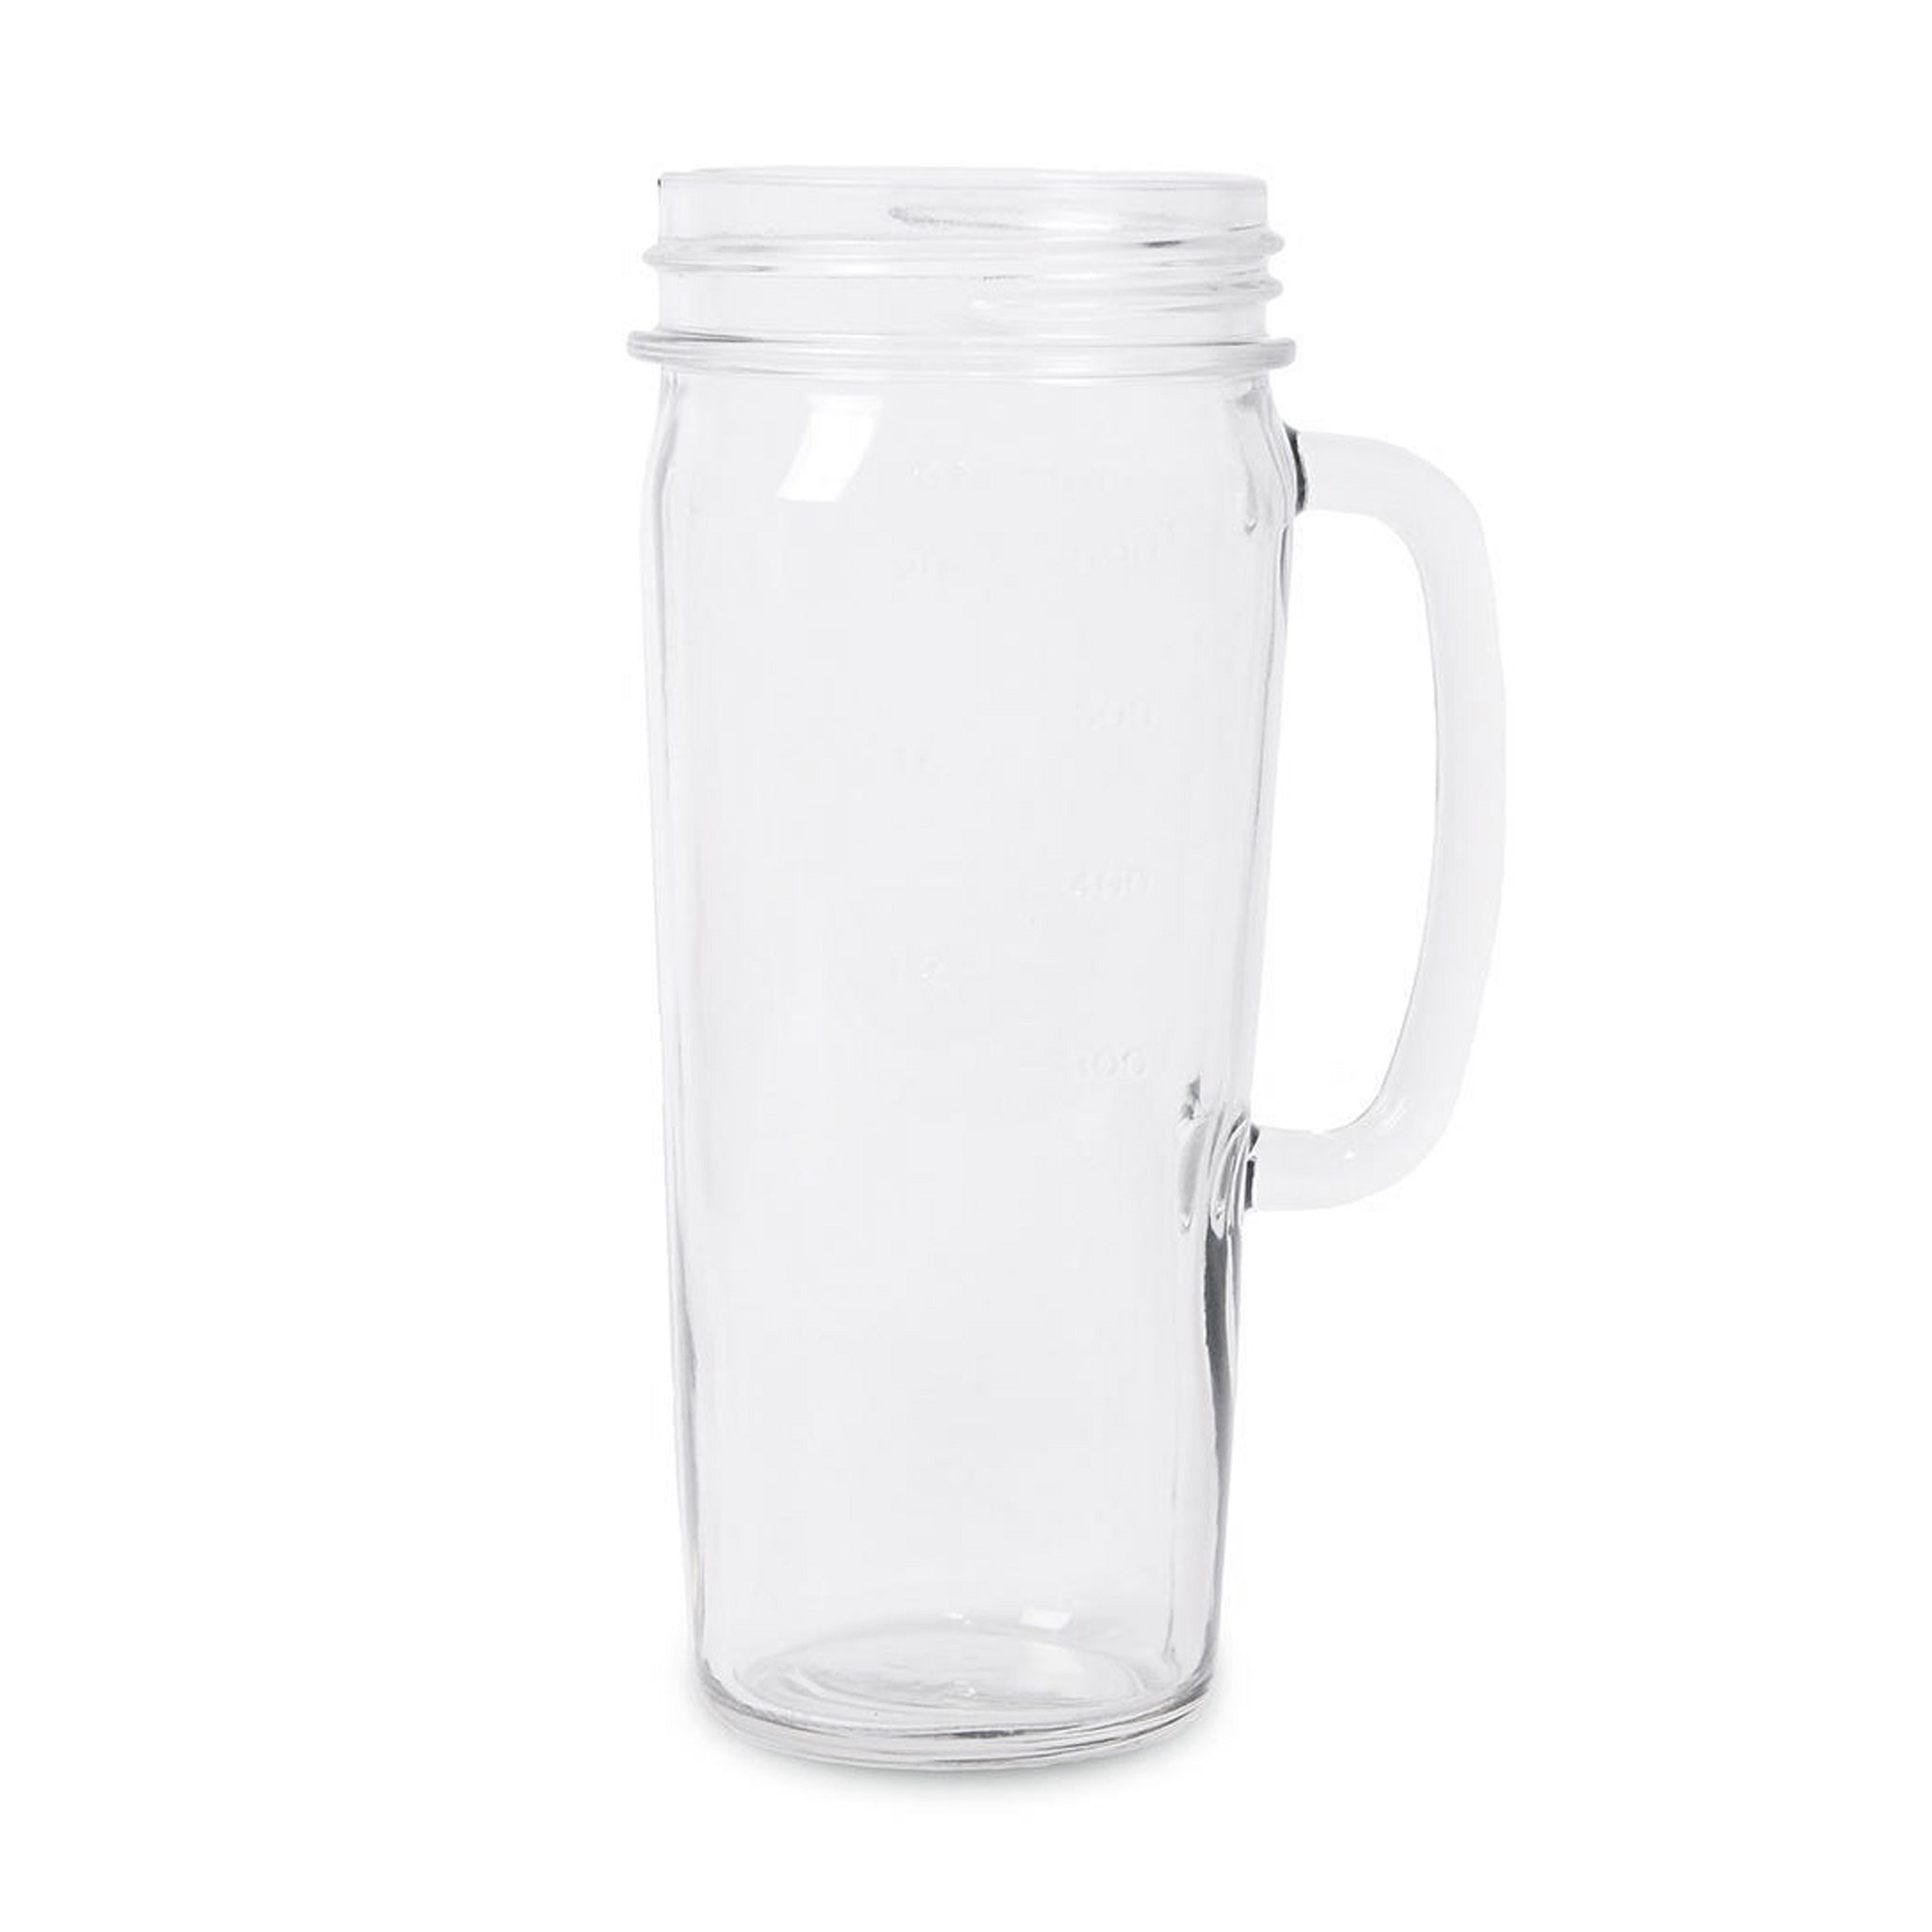 Glass Personal Blender® Glass Container (24 oz)